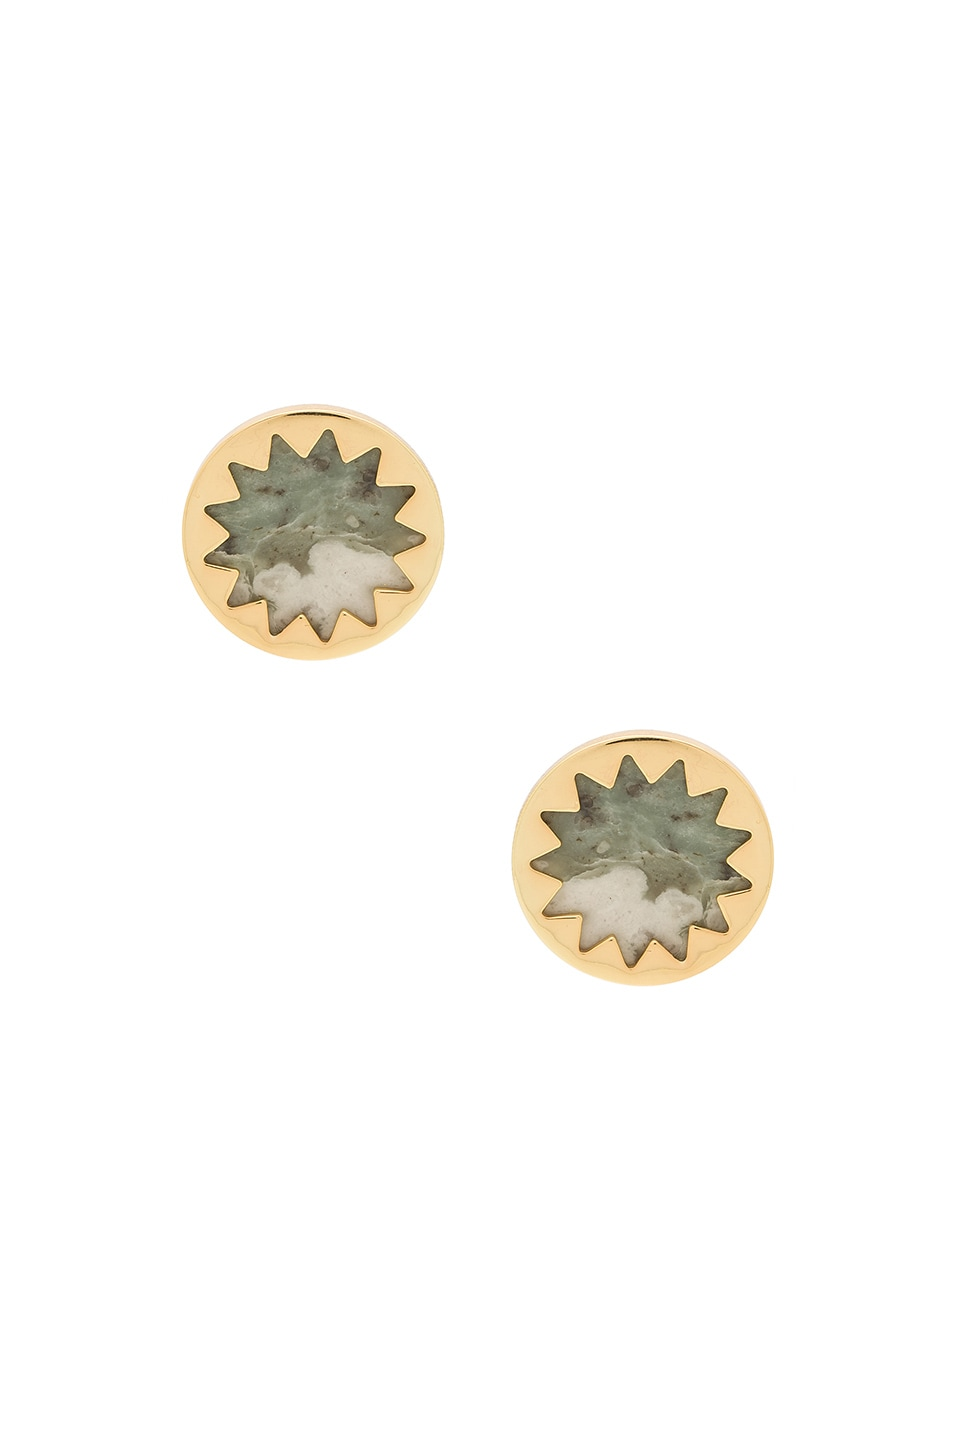 House of Harlow 1960 Sunburst Button Earring in Gold & Lucky Jade